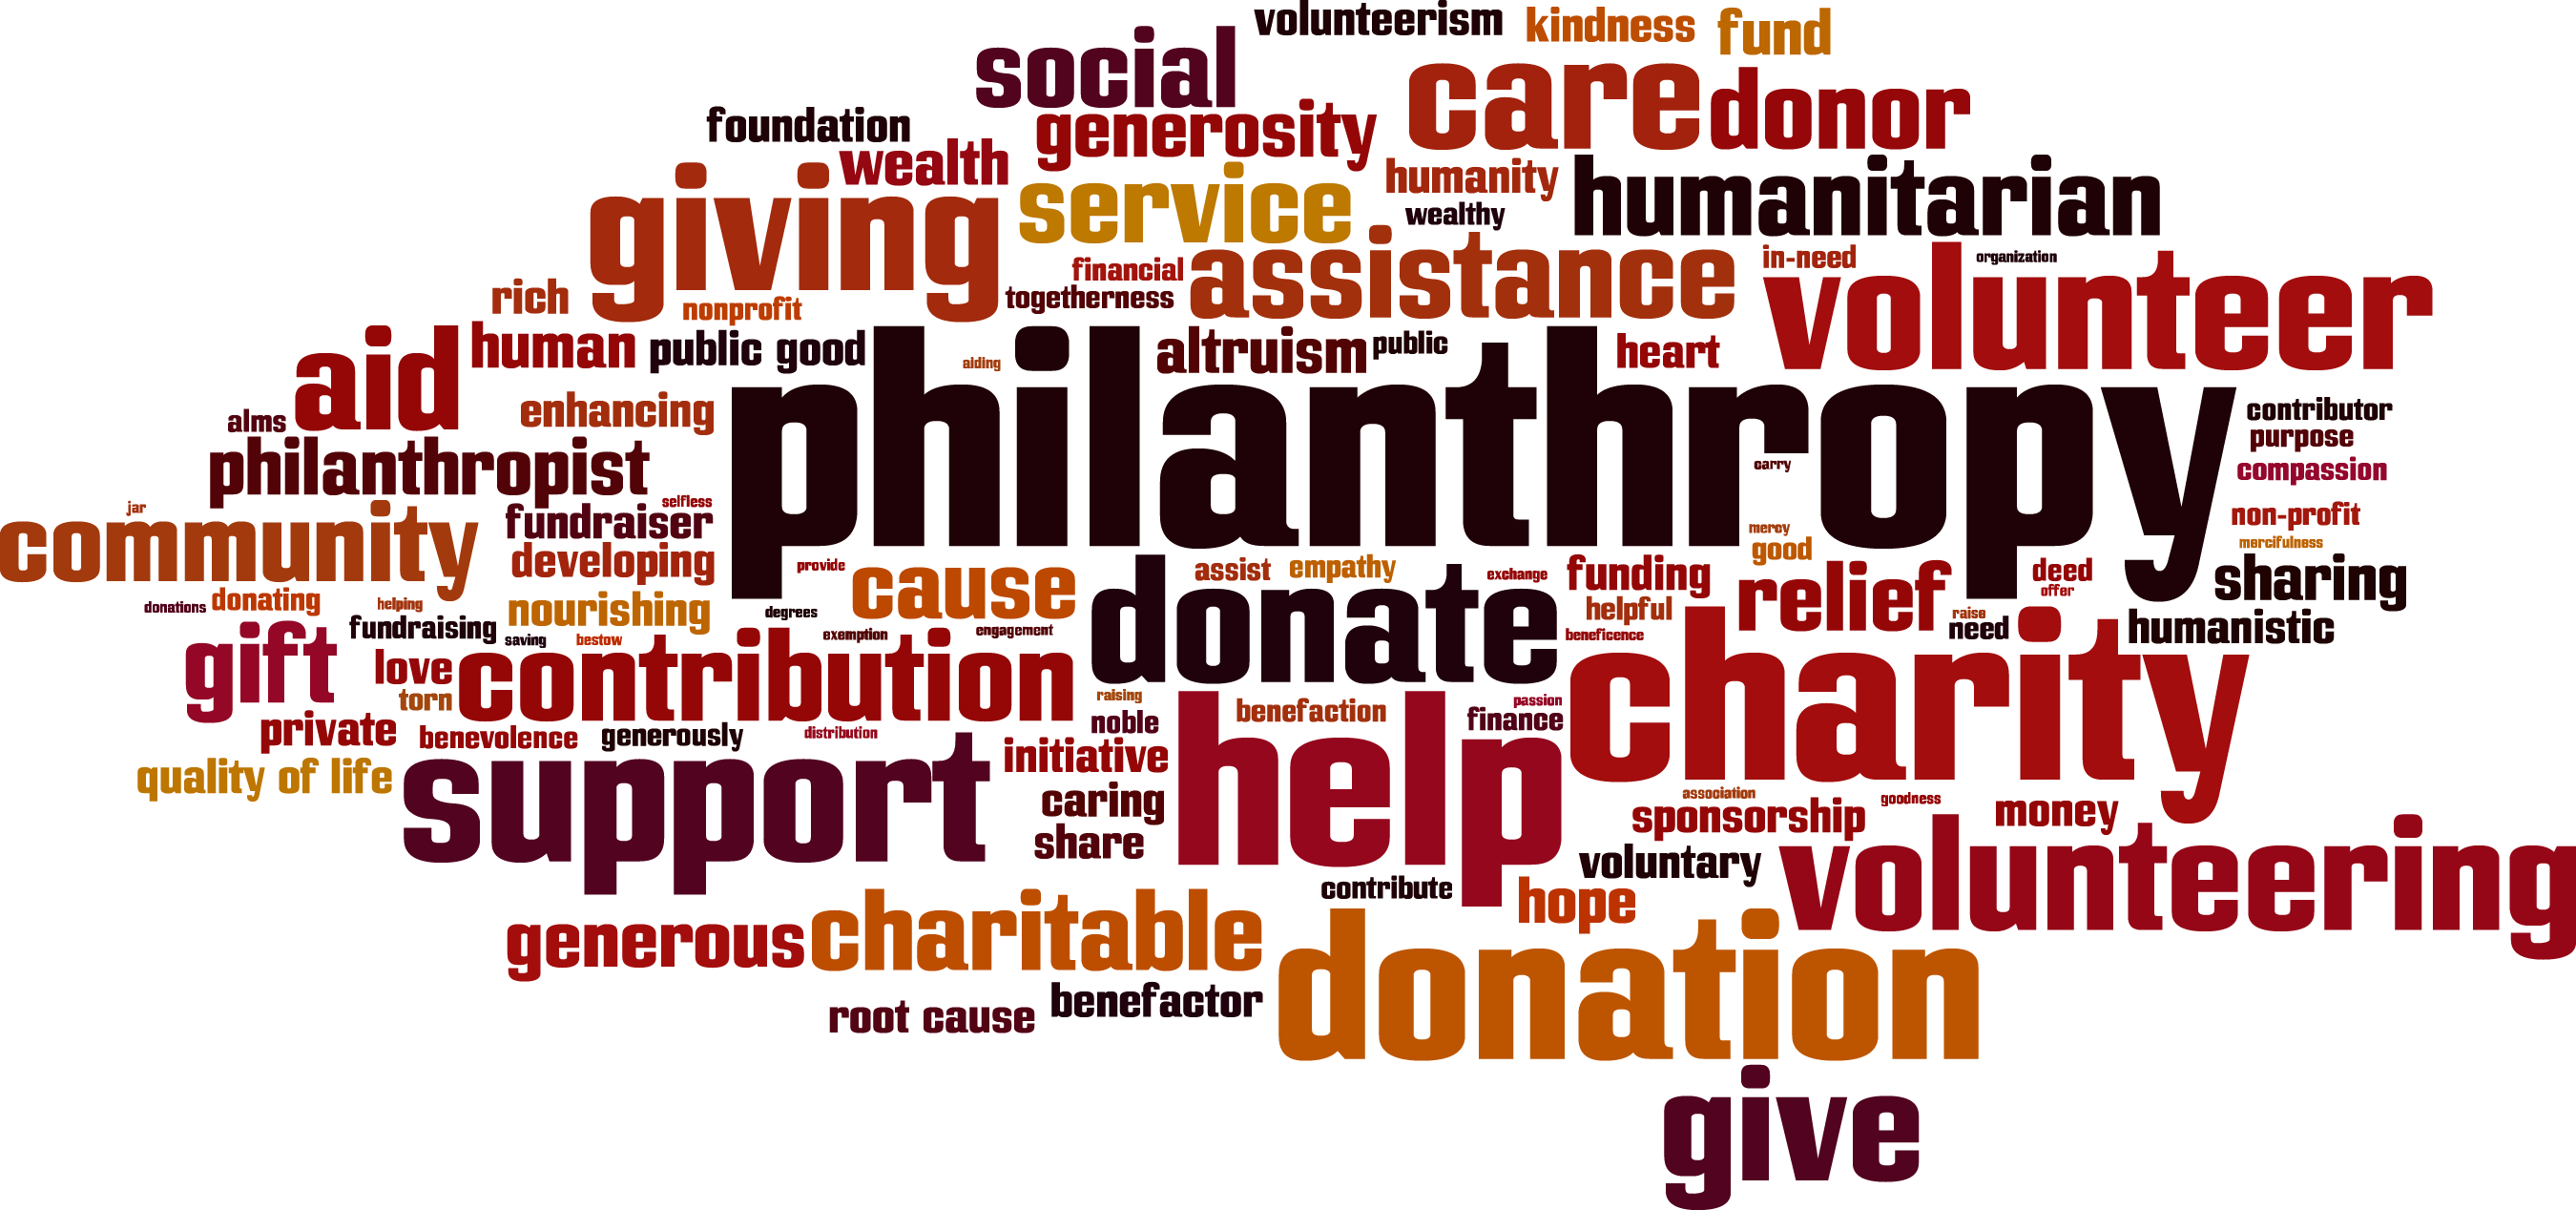 graphic of many words including philanthropy charity support volunteering giving care